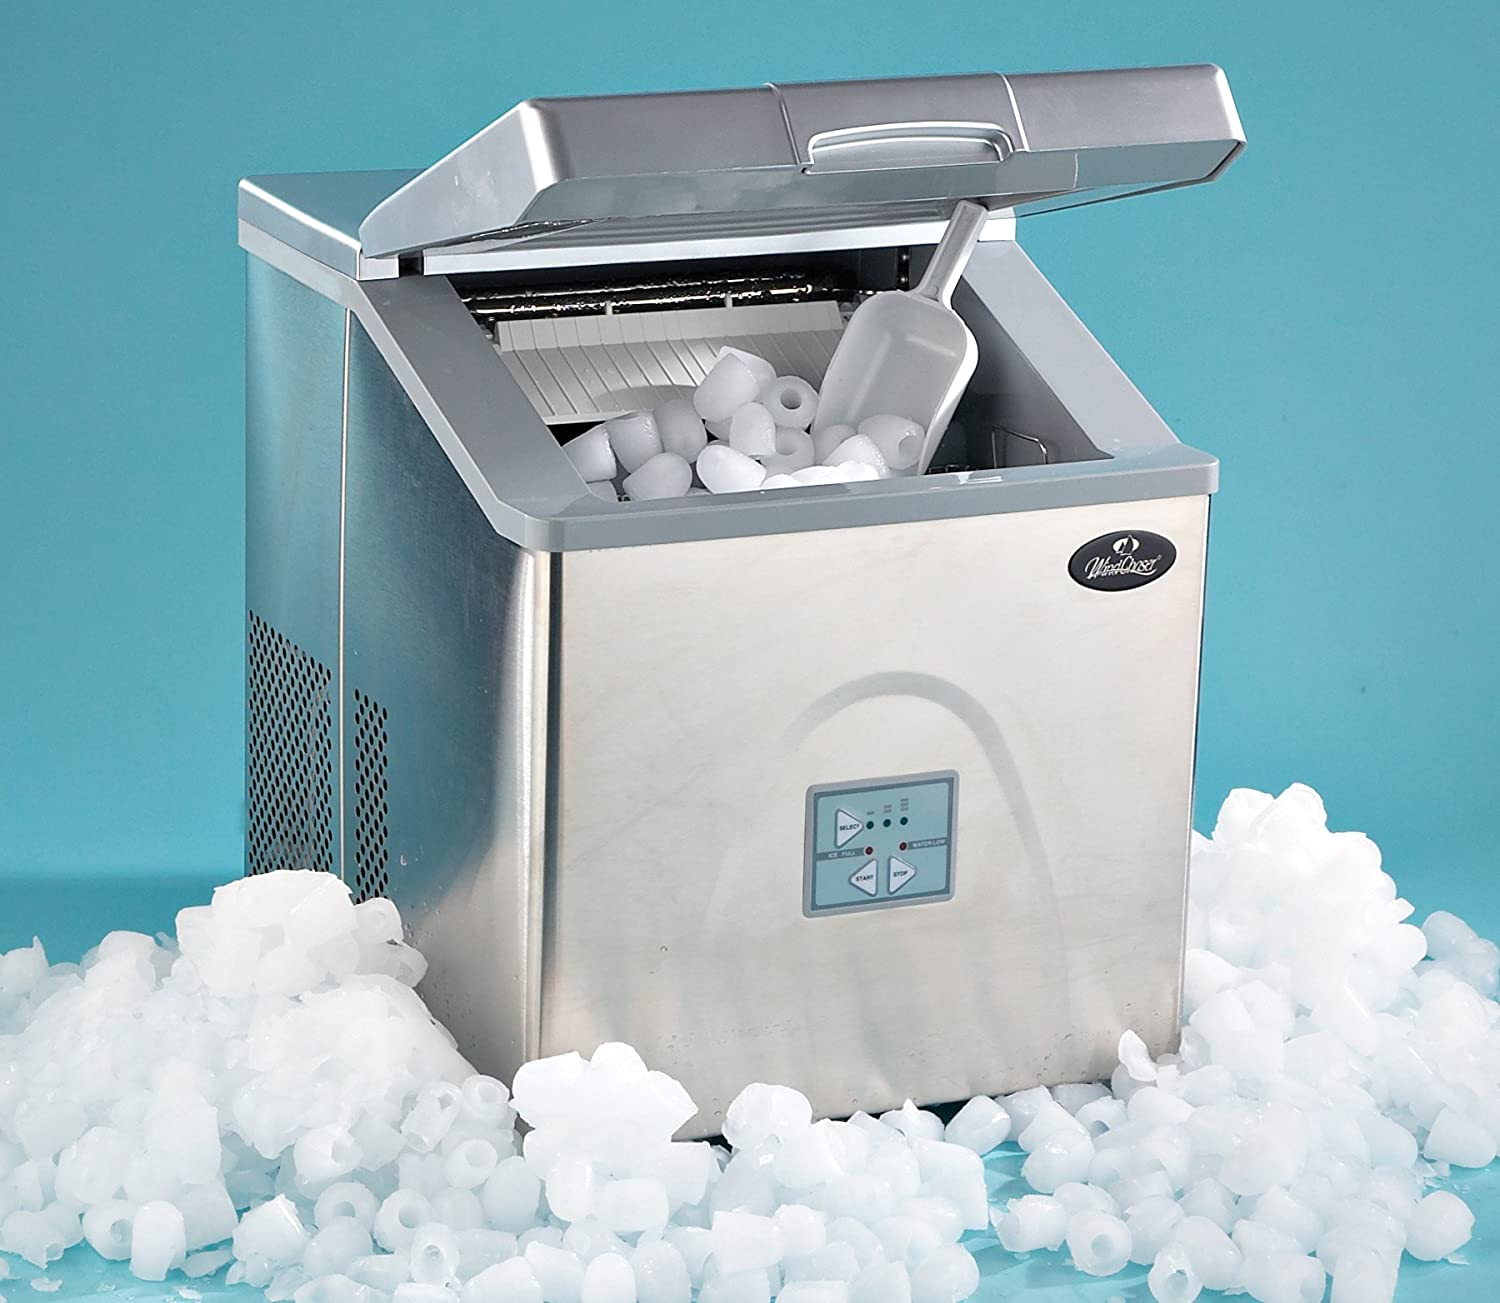 Windchaser Ice Maker Stainless Steel BRAND NOT SPECIFIED